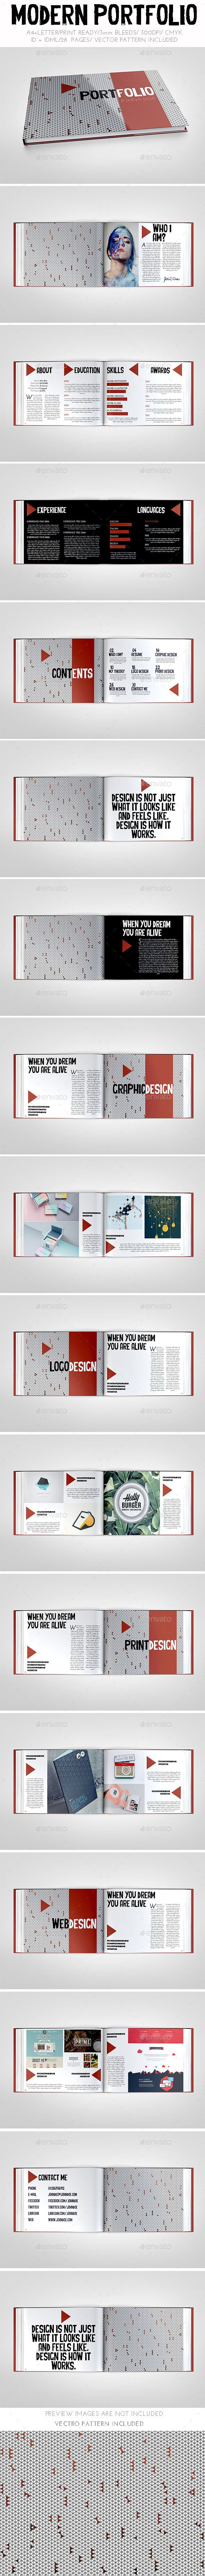 Modern Portfolio Brochure Template. Download: http://graphicriver.net/item/modern-portfolio-brochure/11290170?ref=ksioks